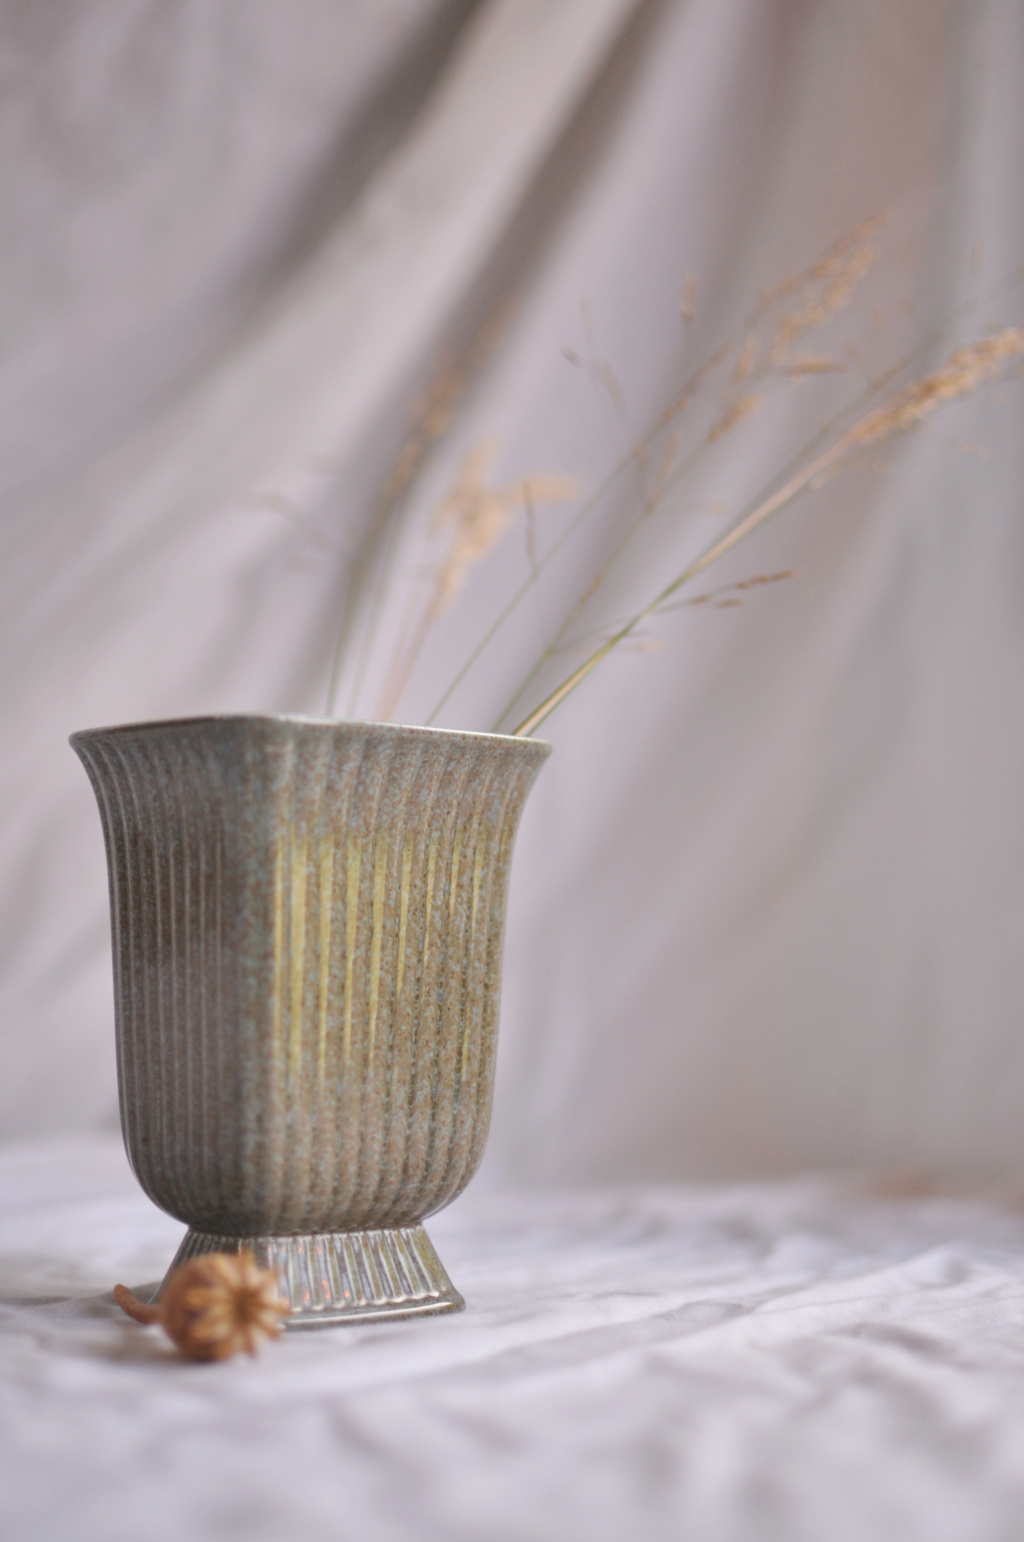 Cannot find anything remotely similar as this small grey vase? D5900e10